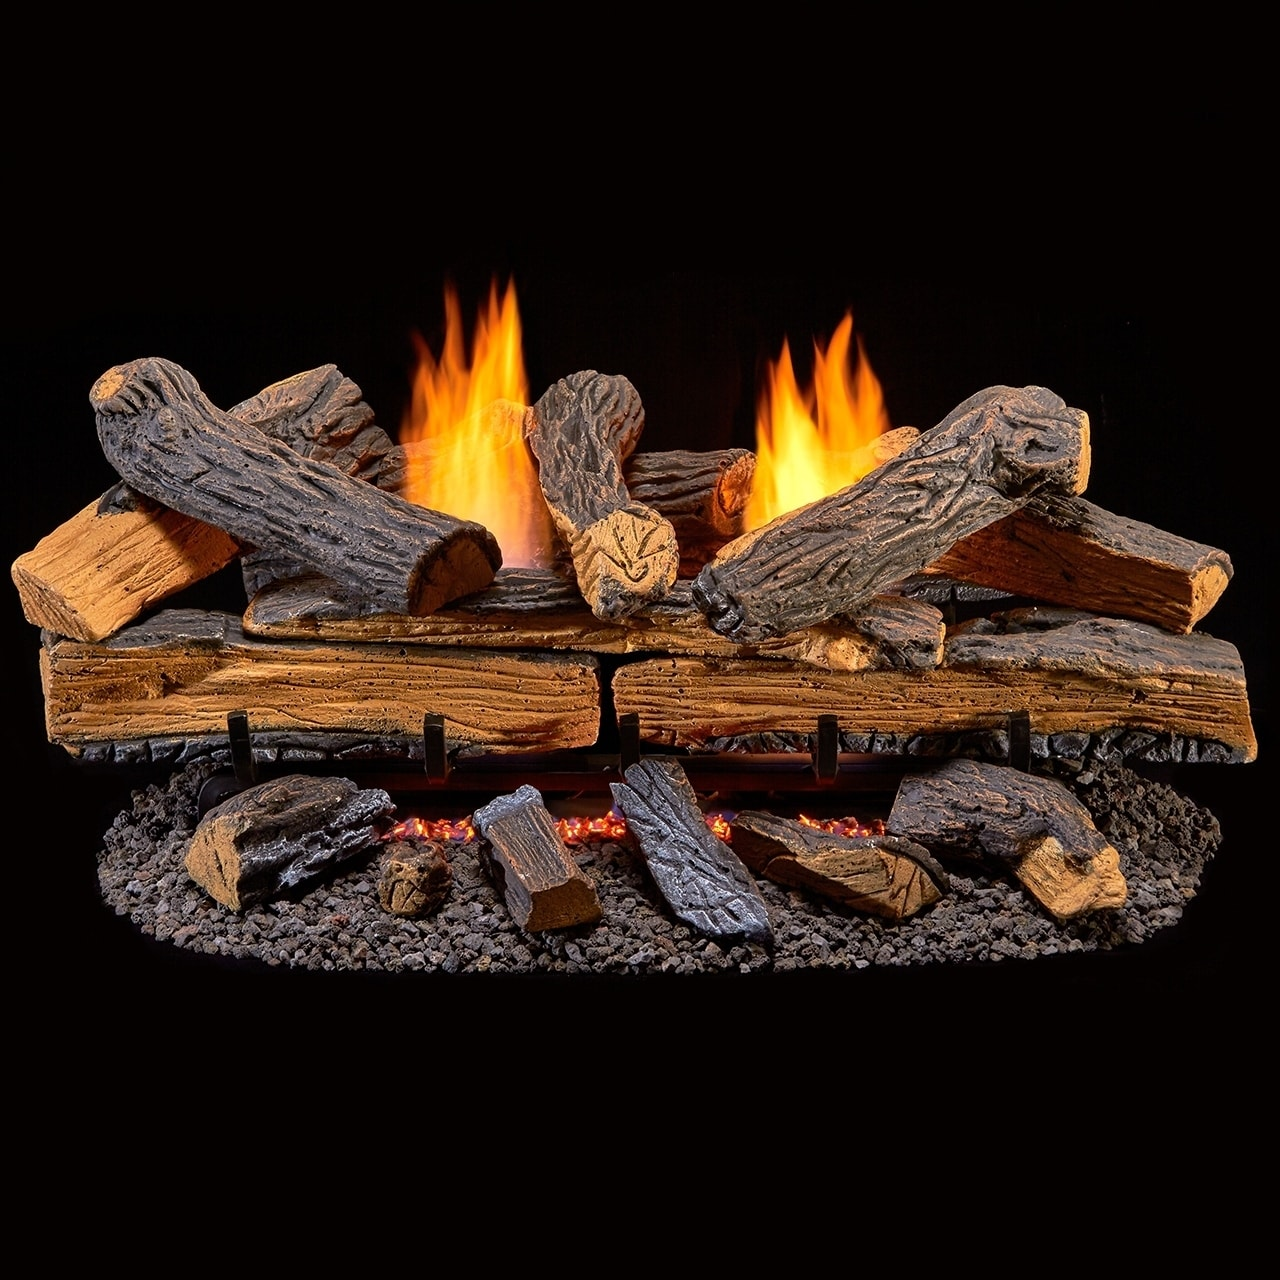 Natural Gas Fireplace Logs Set 30 Large Realistic Vented Fire